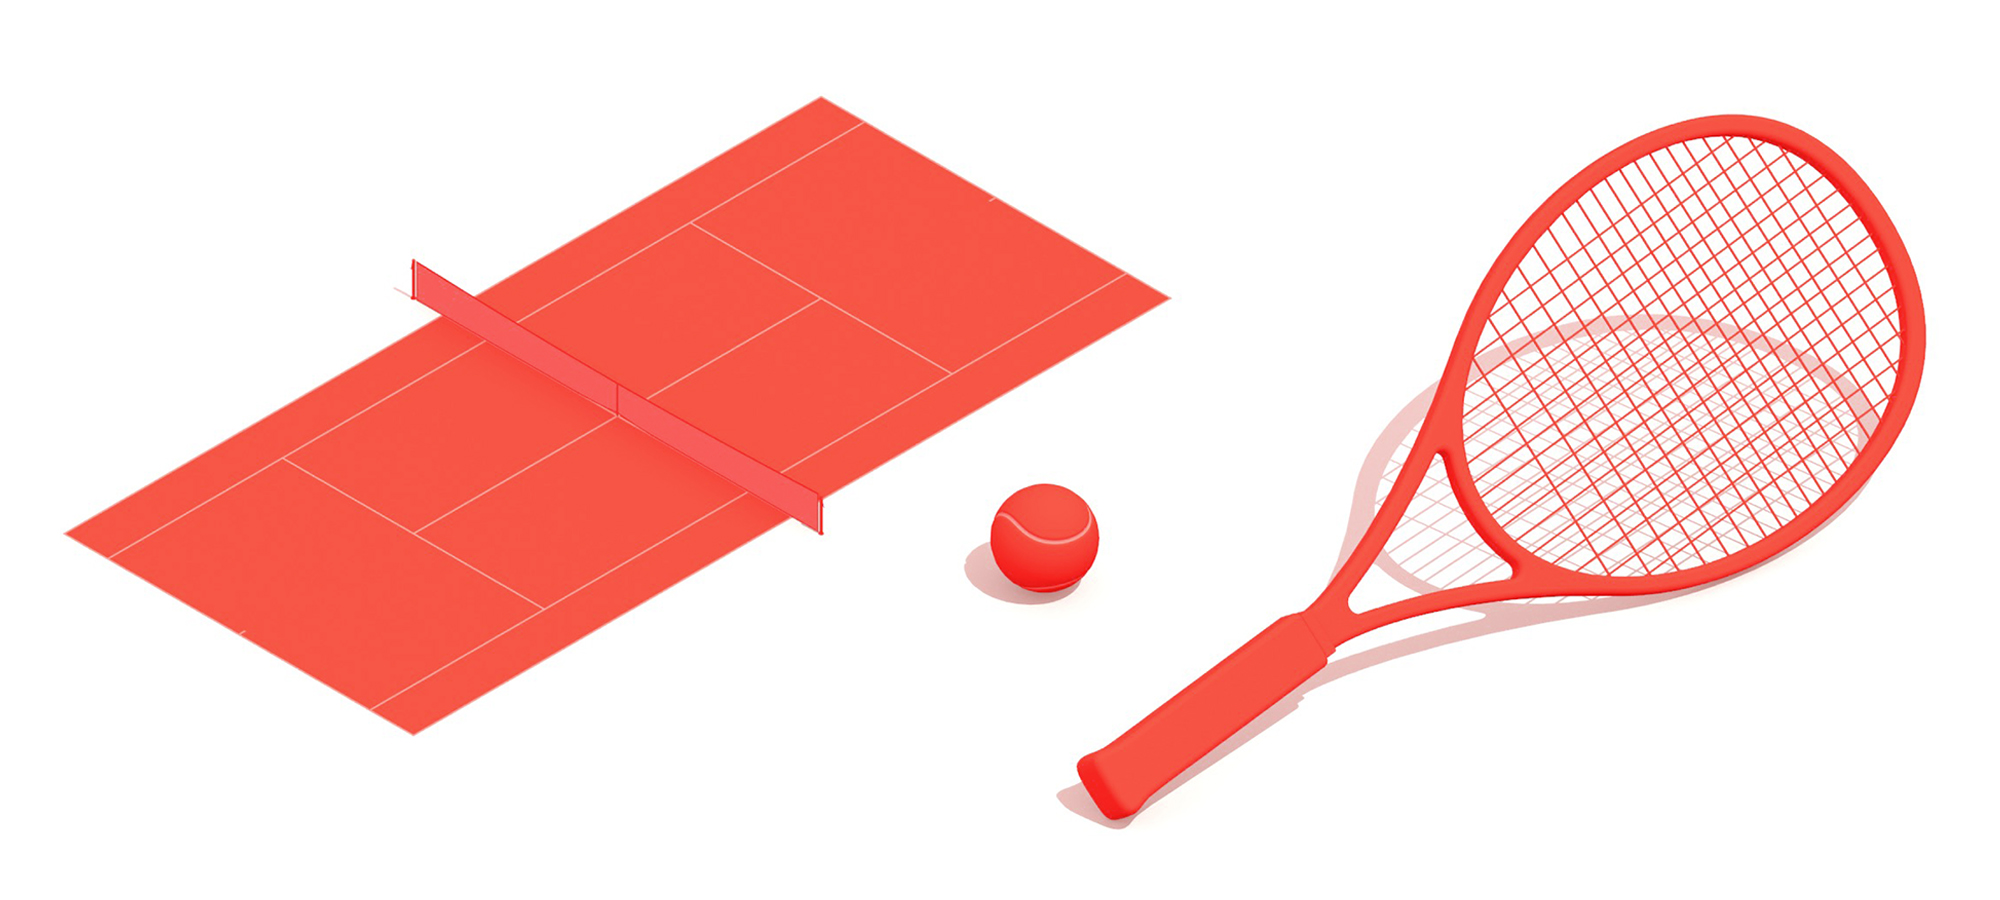 Group of 3D elements found in the game of Tennis including the tennis court, tennis ball, and tennis racket